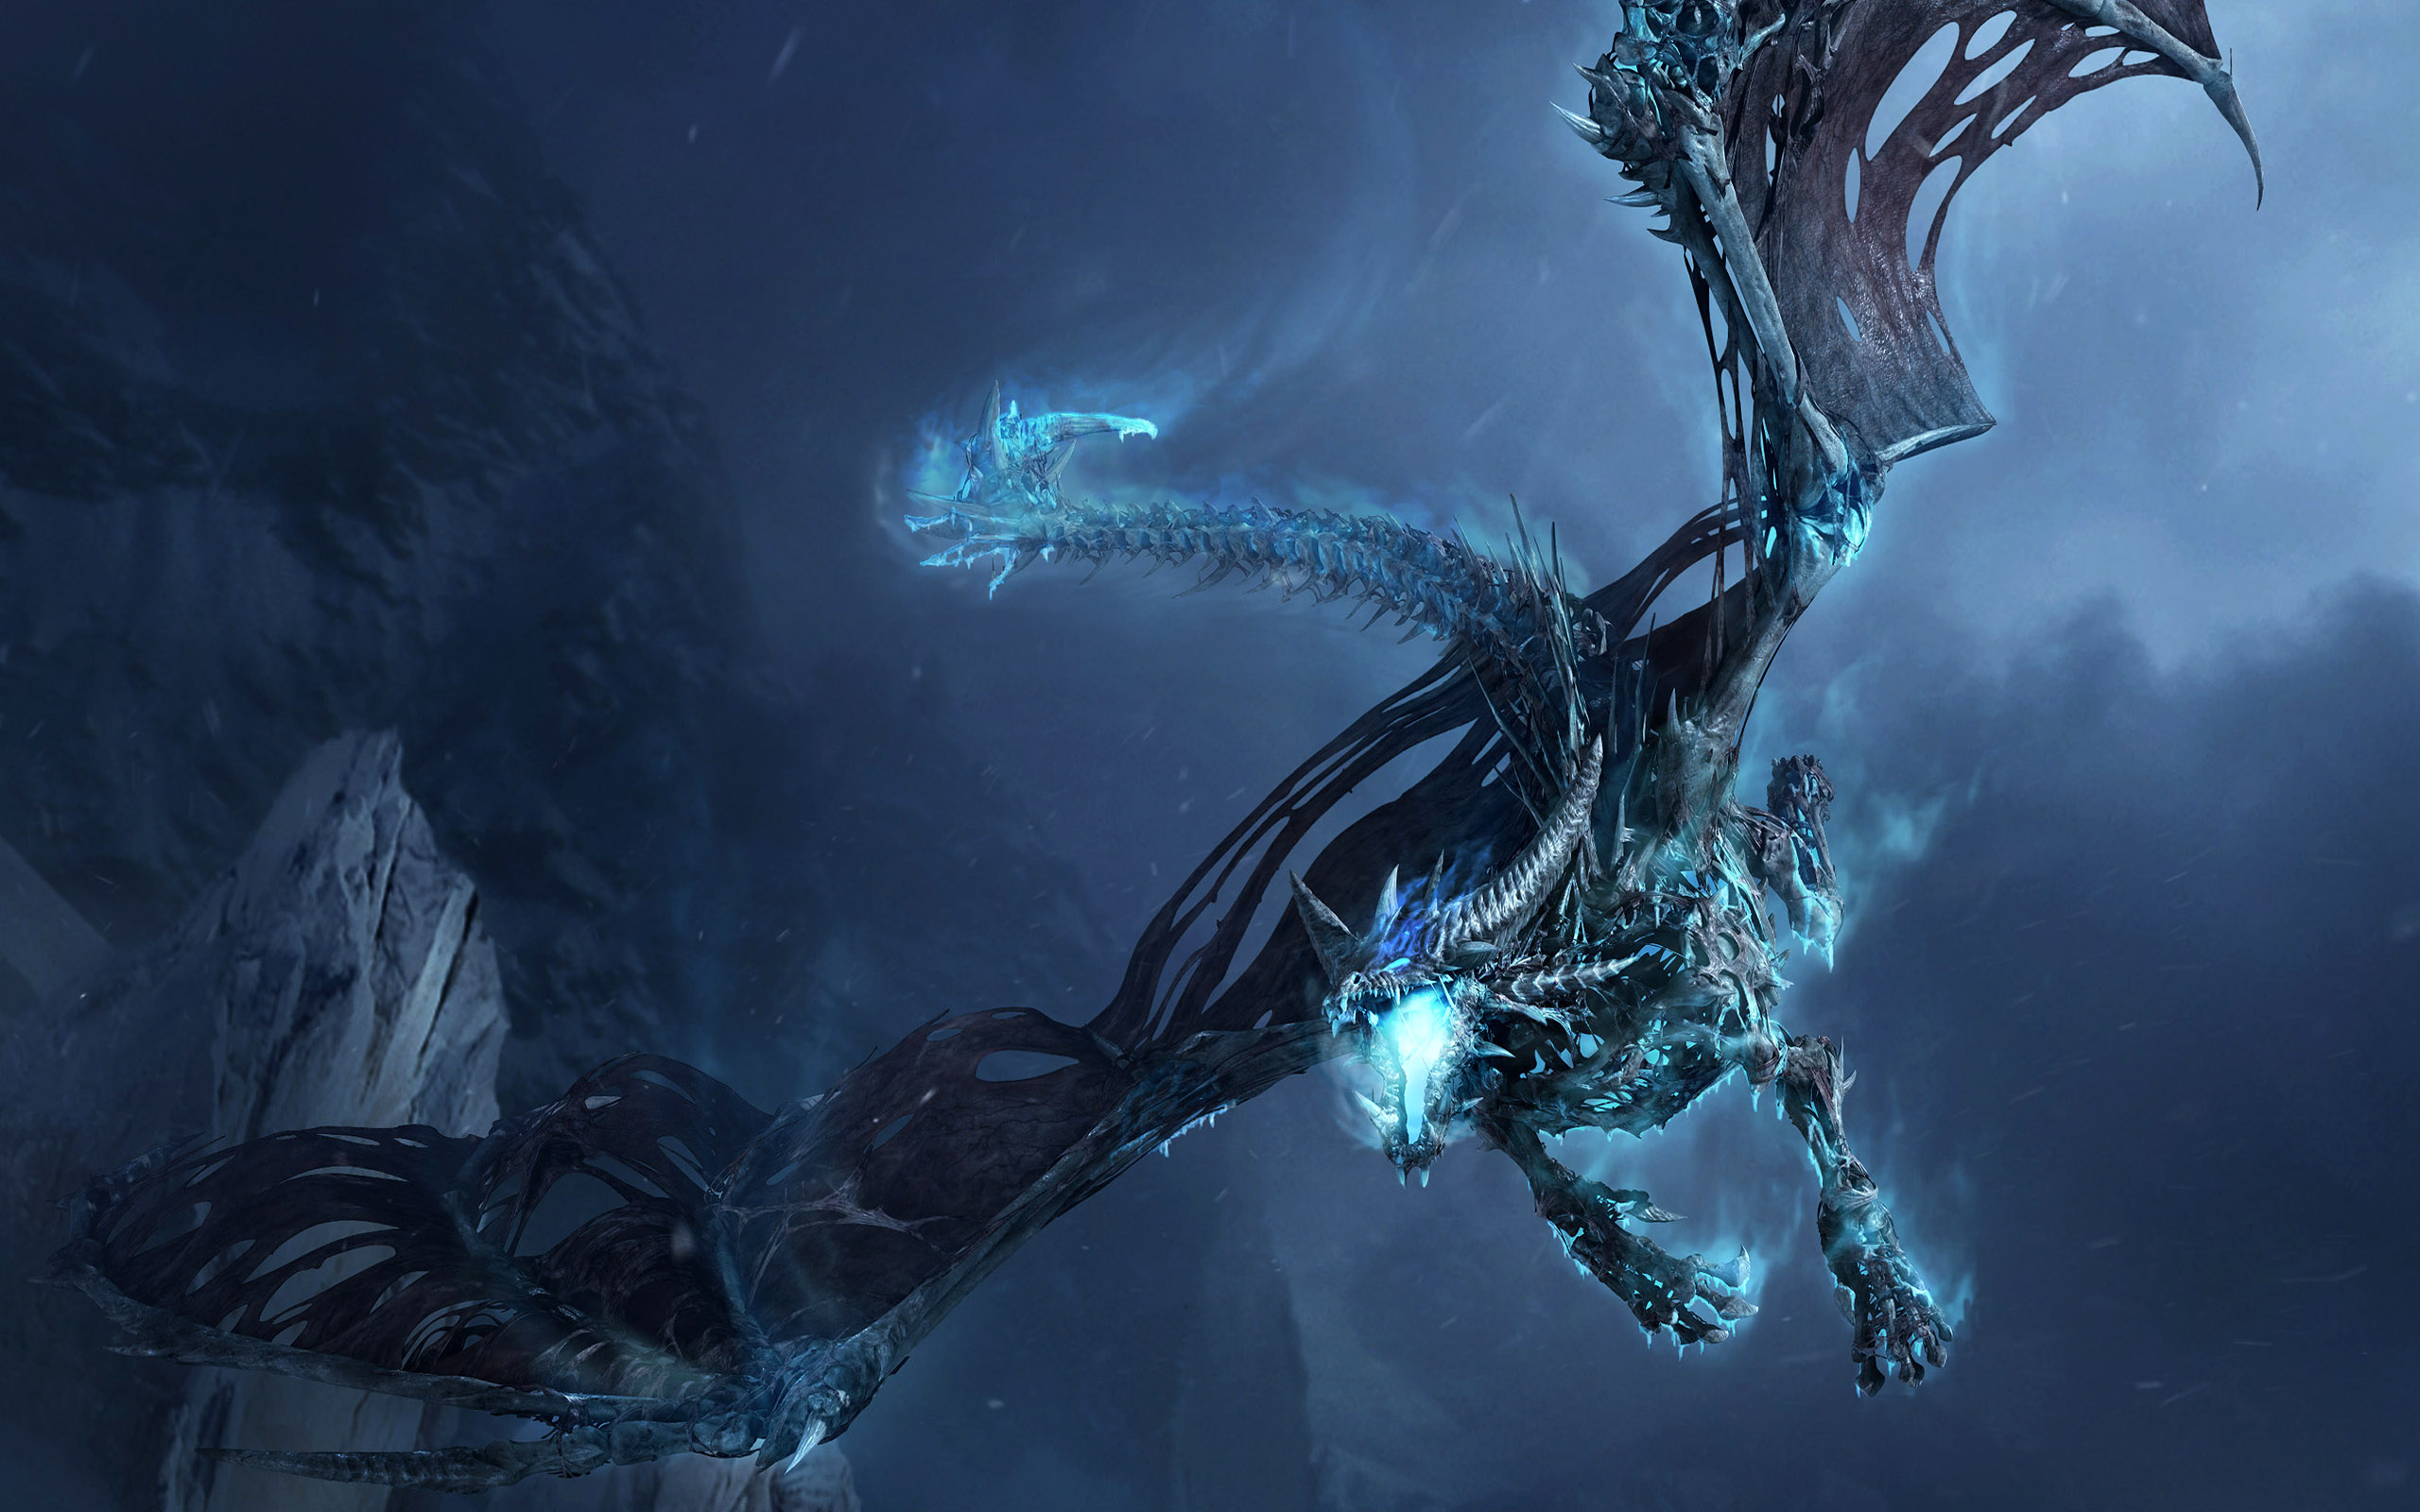 World of Warcraft Dragon Wallpapers HD Wallpapers 2560x1600